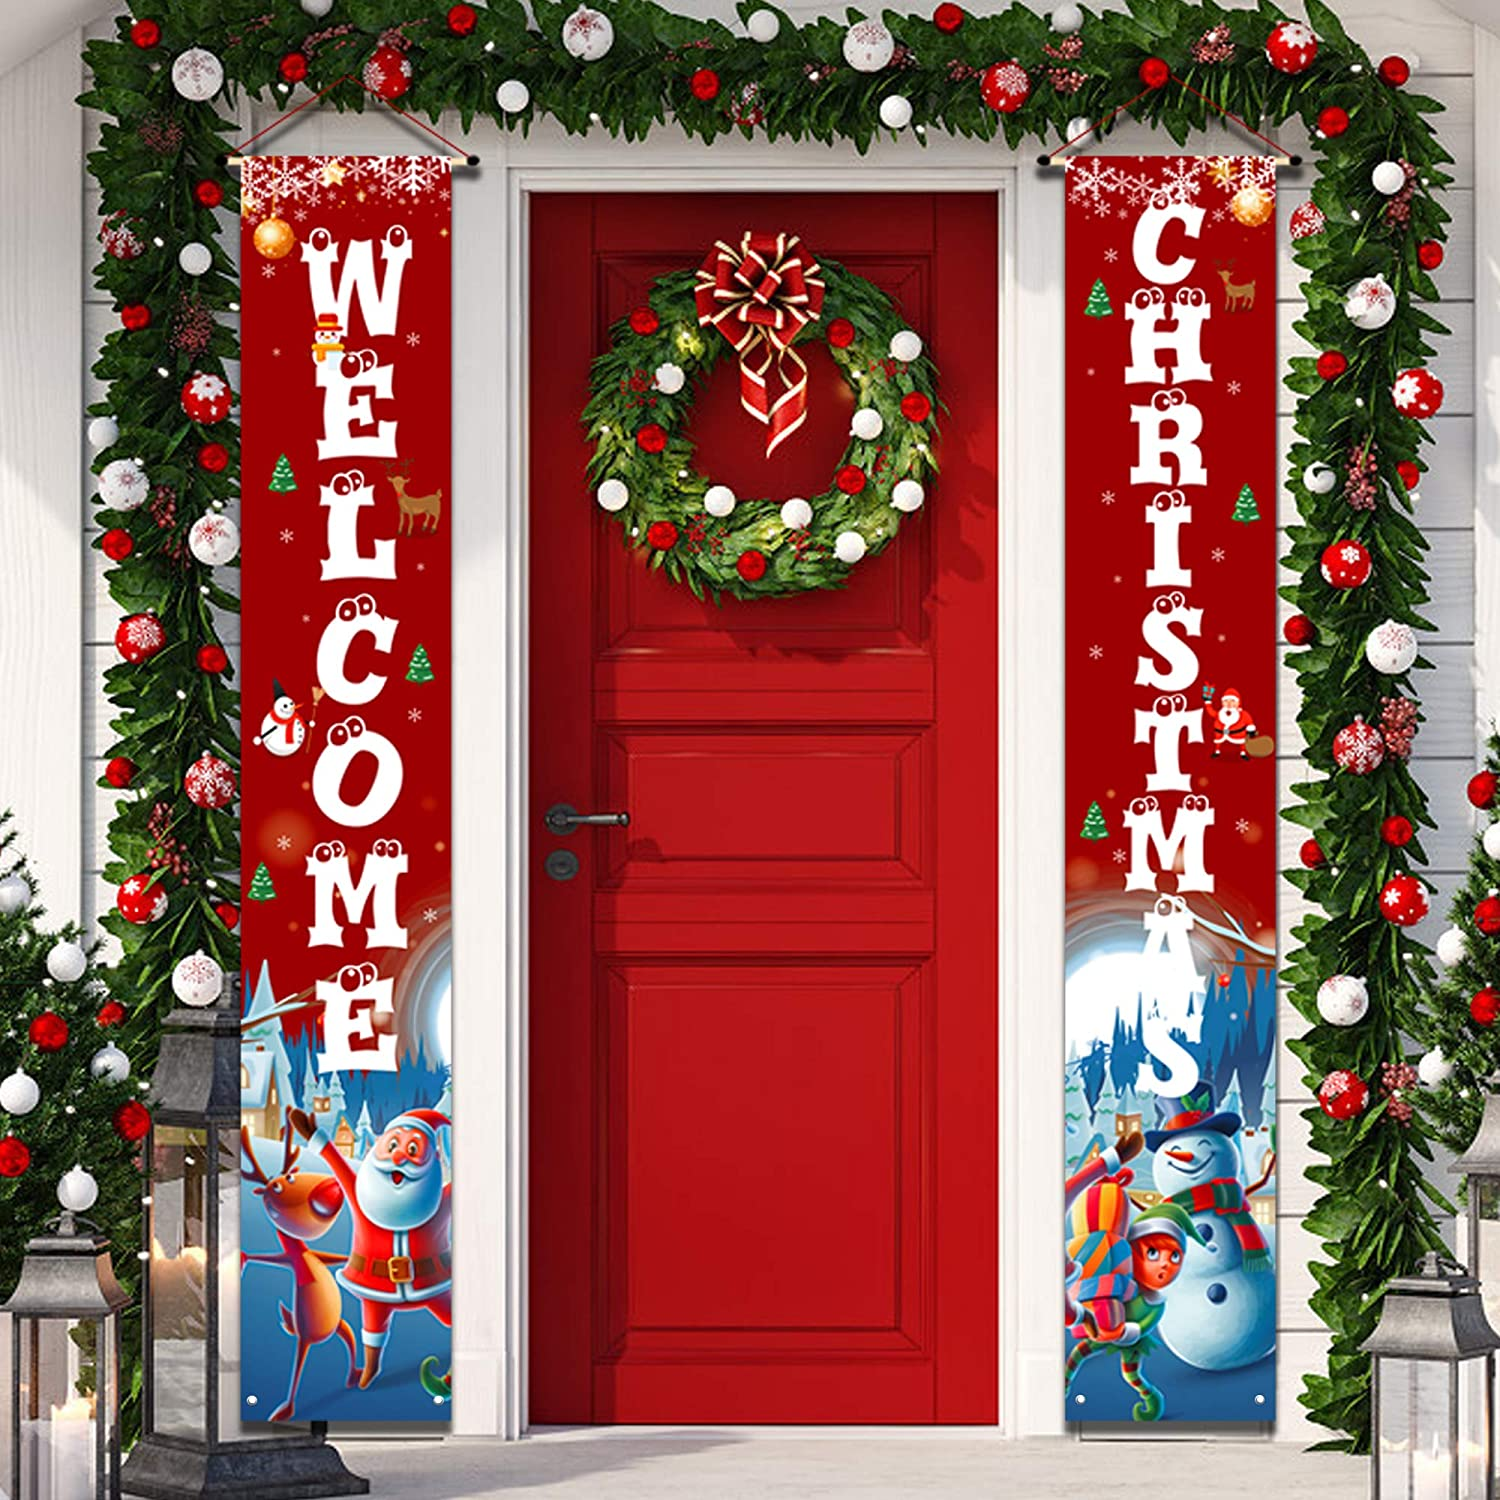 Outdoor Christmas Decorations - Merry Christmas banner sign,Hanging Christmas Door Decorations for Home Outdoor Front Door Wall Party - Red Christmas Decor Flags Large Size 12×71Inch